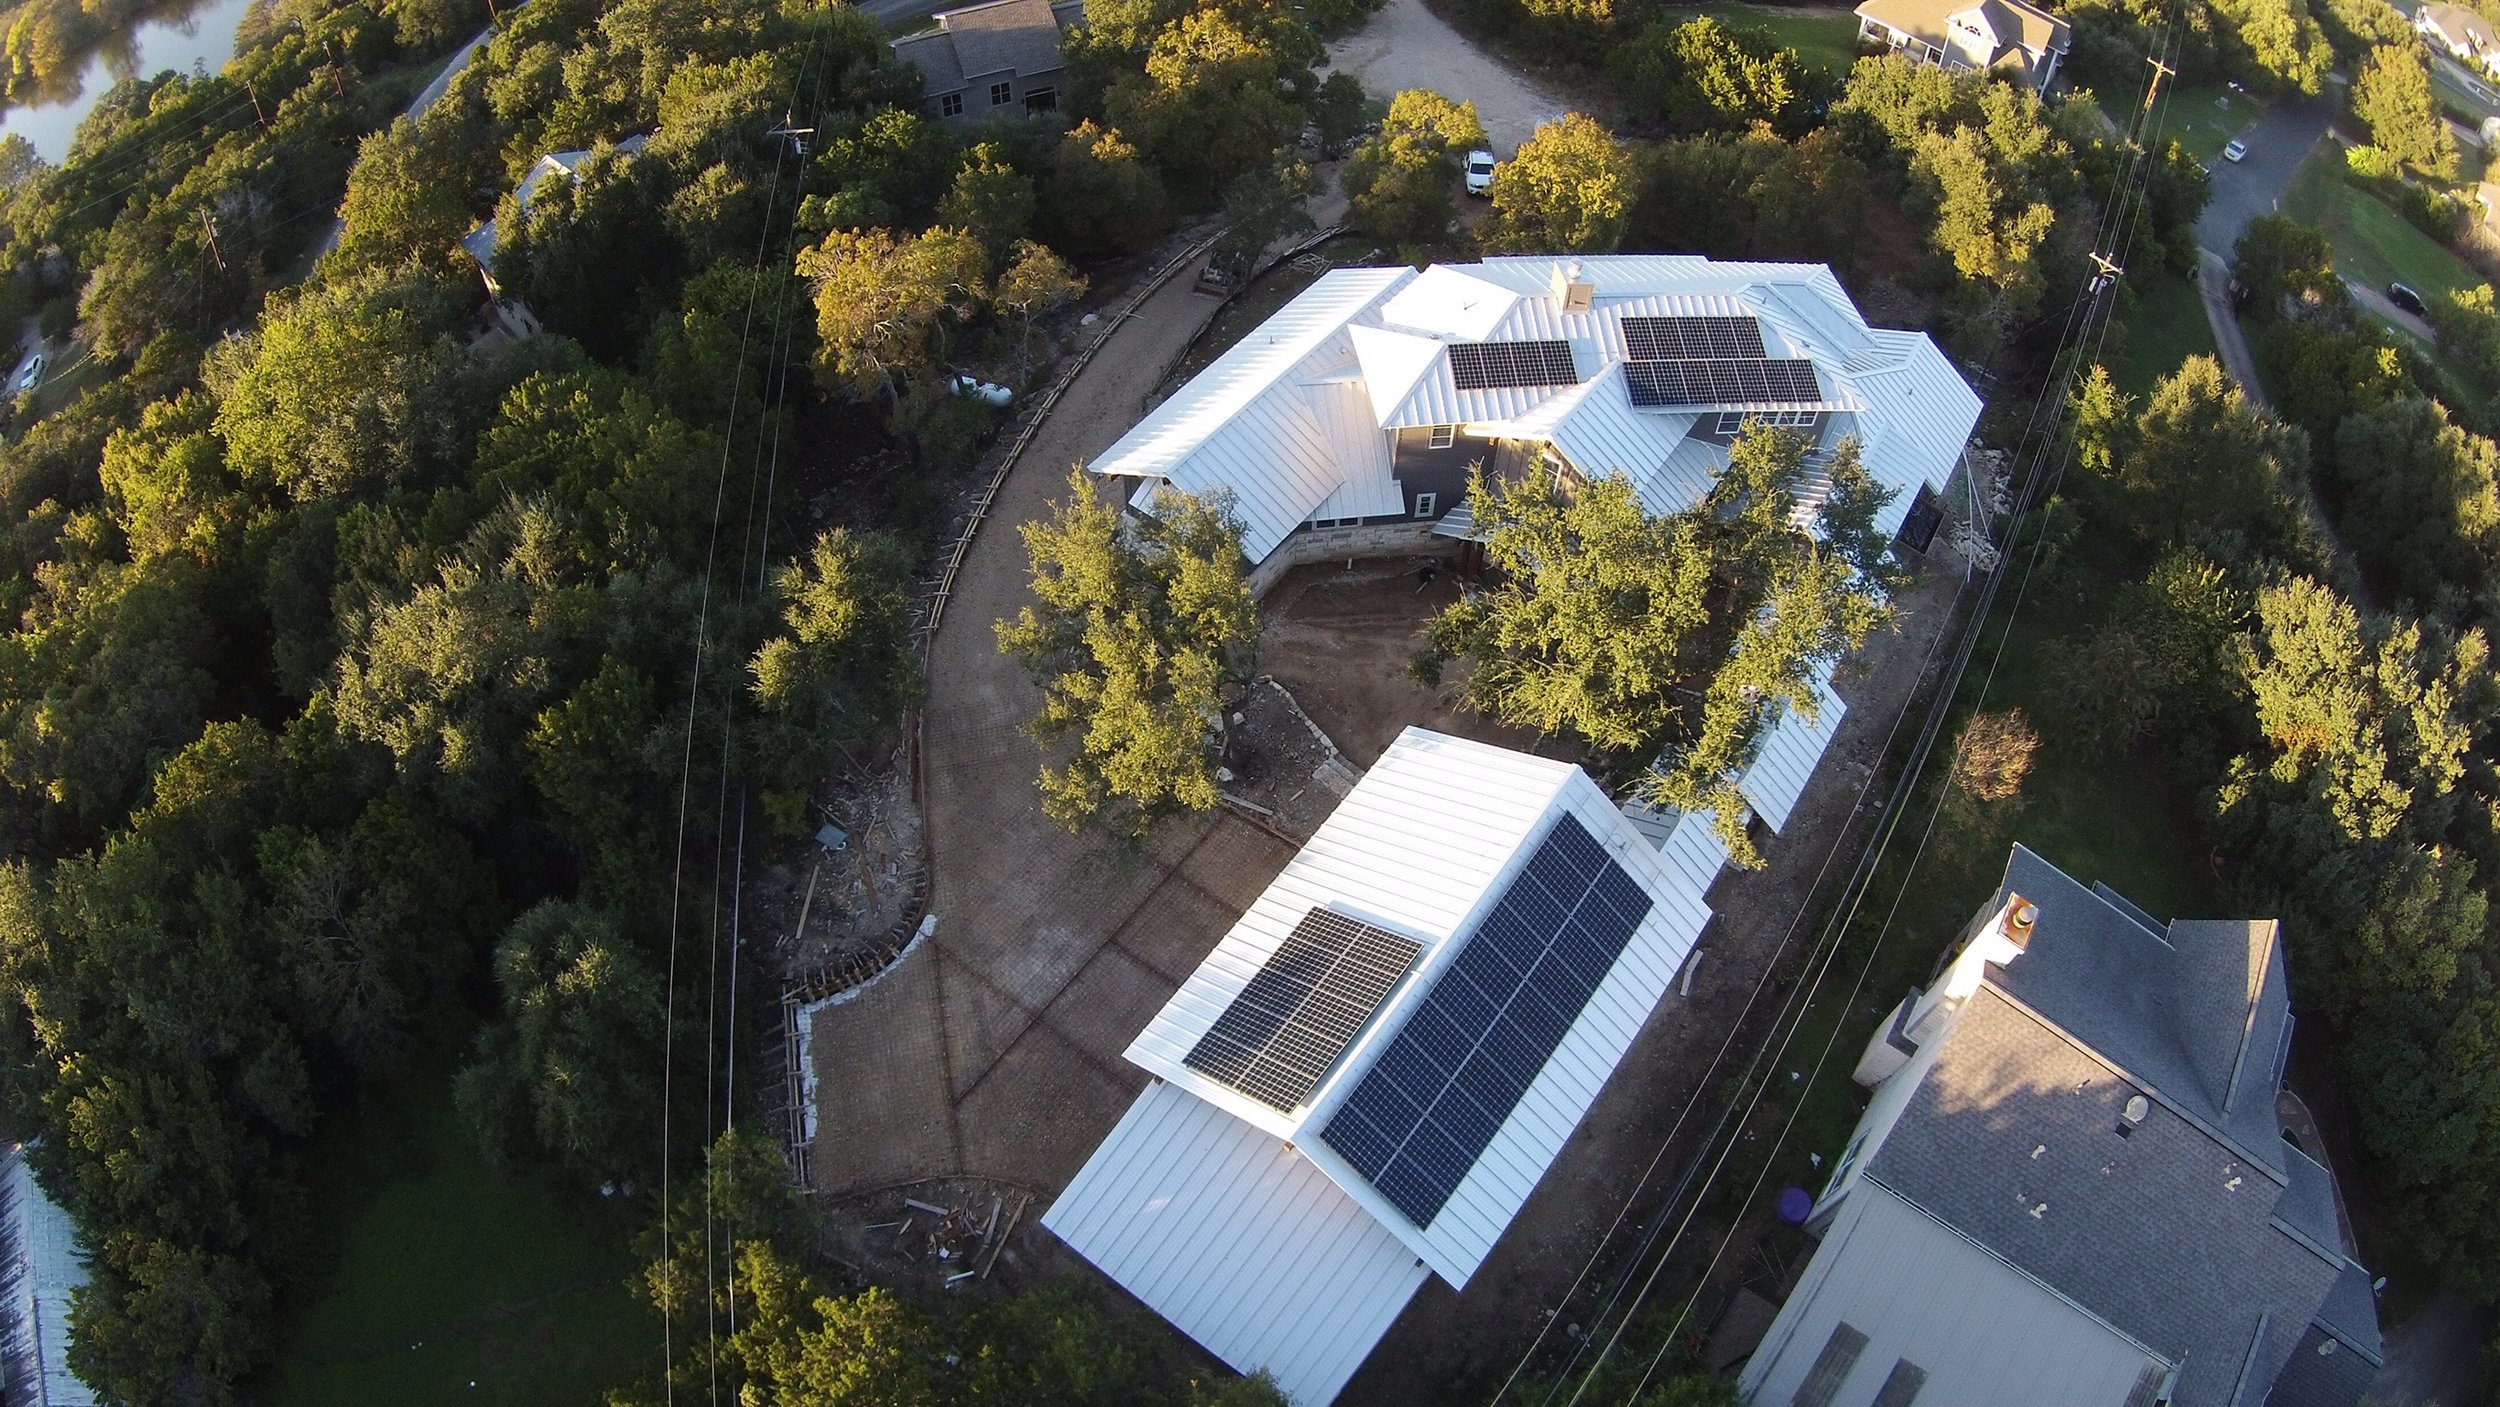 Rooftop Solar Panels - Designed & Installed by LighthousSolar